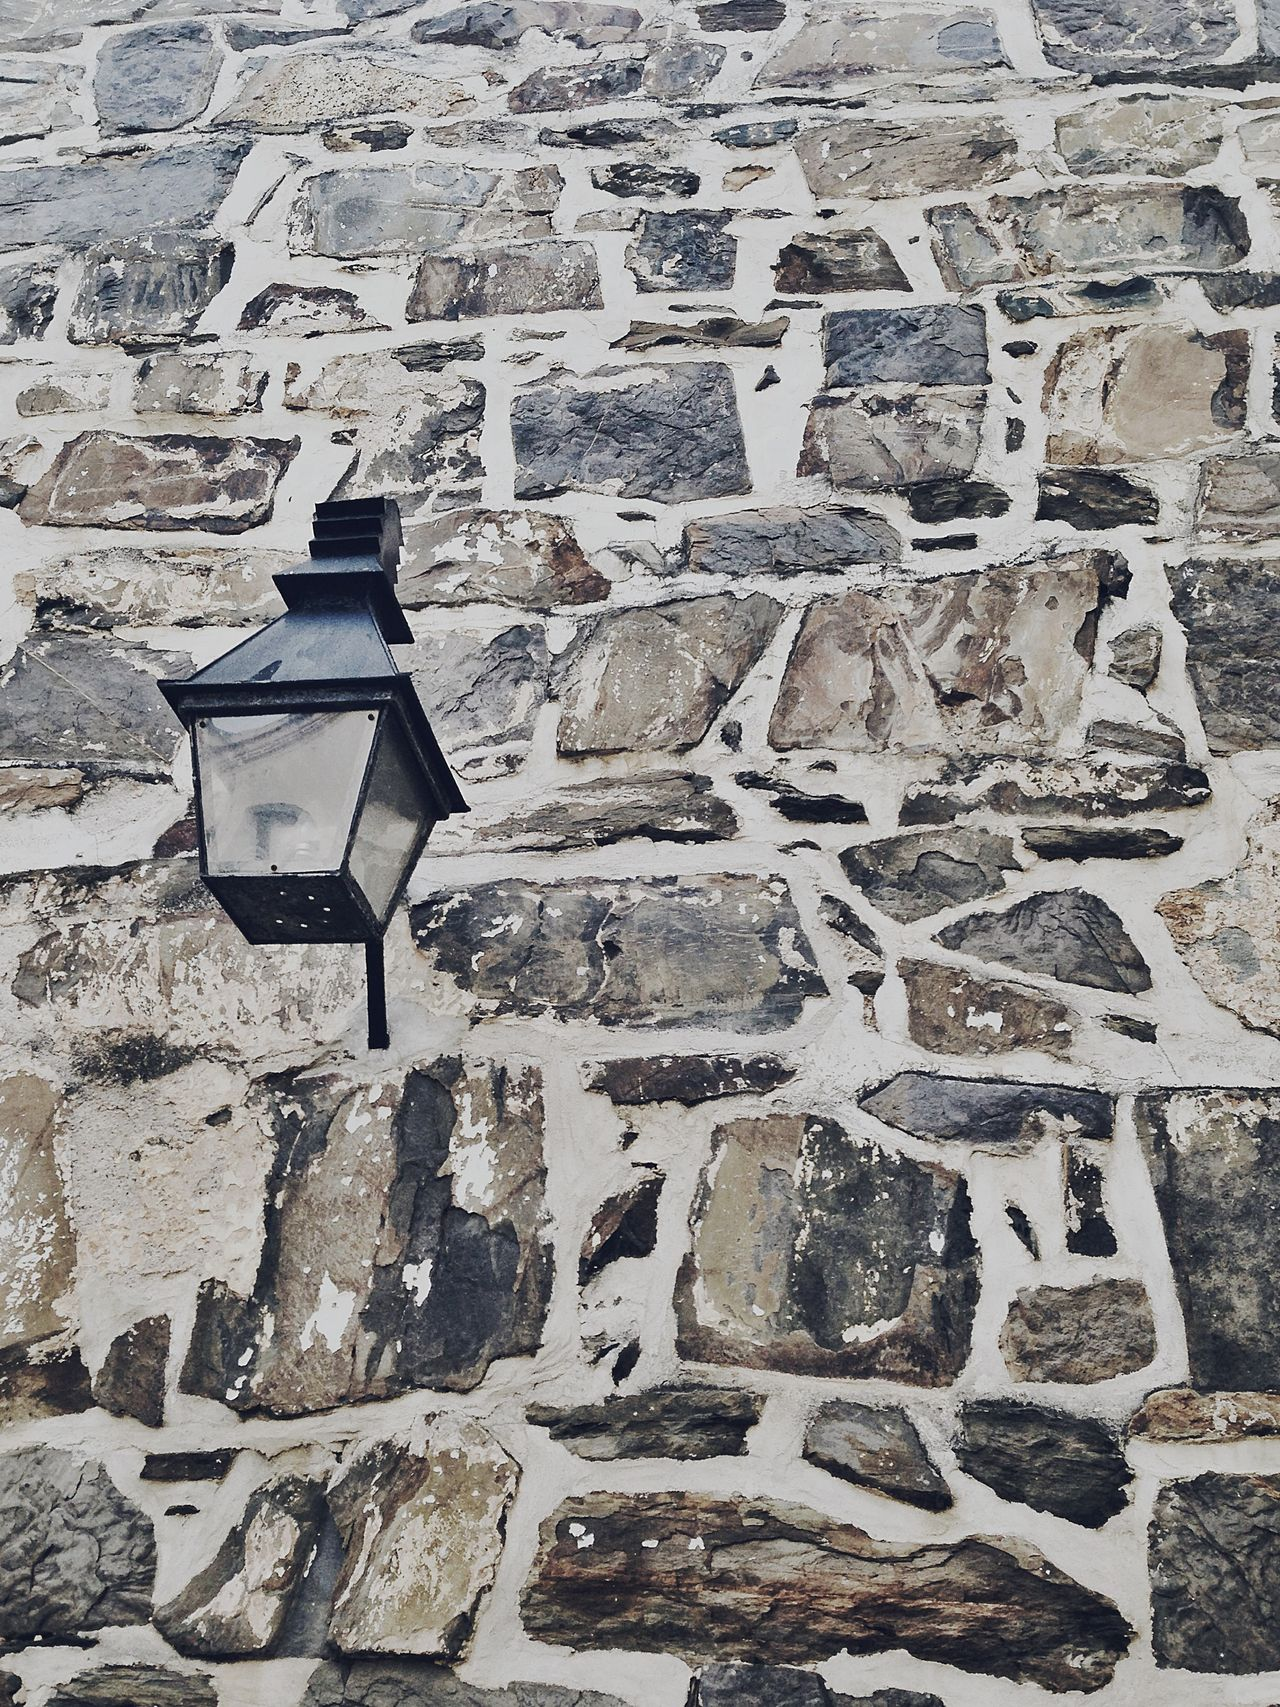 Architecture Brick Wall Building Built Structure City Day Fixture Historic Light No People Old Outdoors Stone Material Sunny The Past